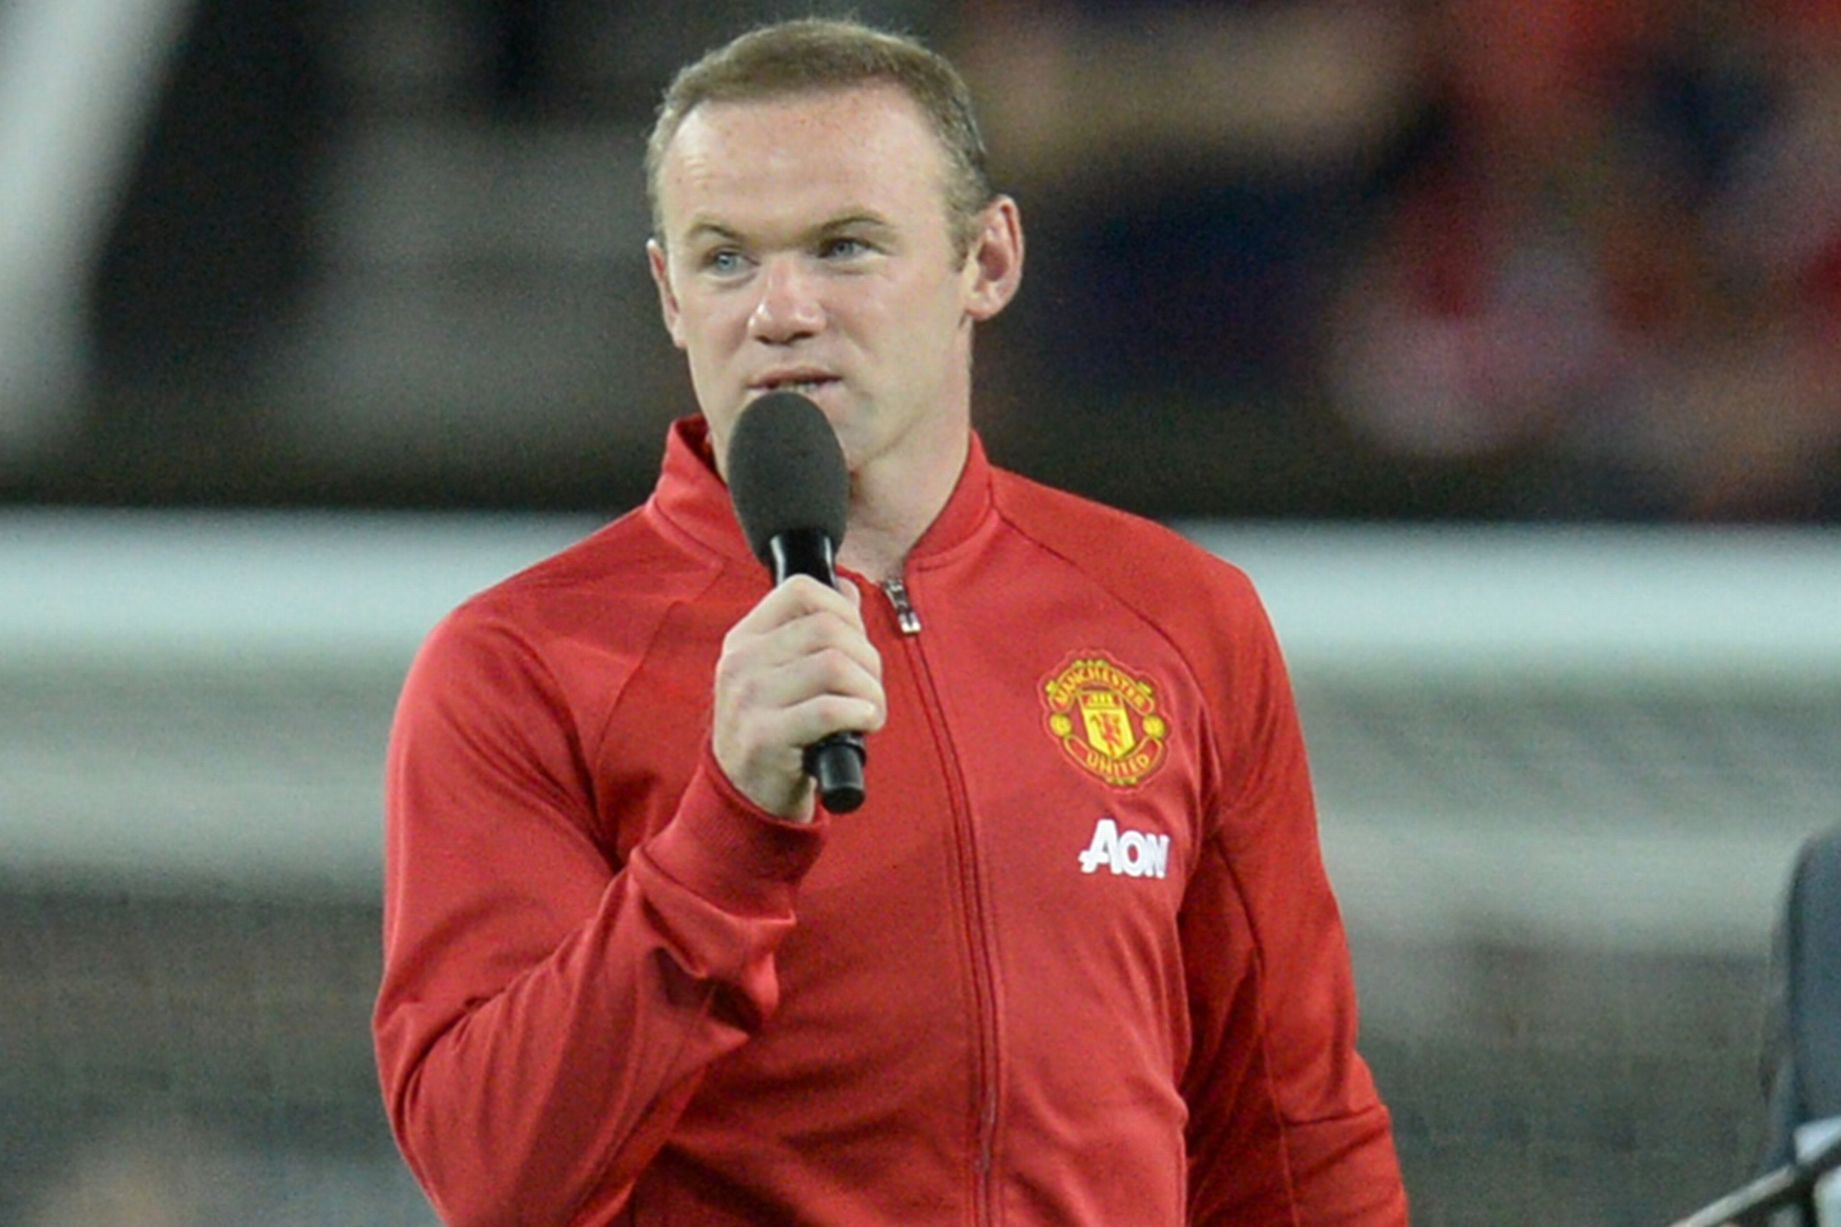 Wayne Rooney talks to the fans at the end of the testimonial